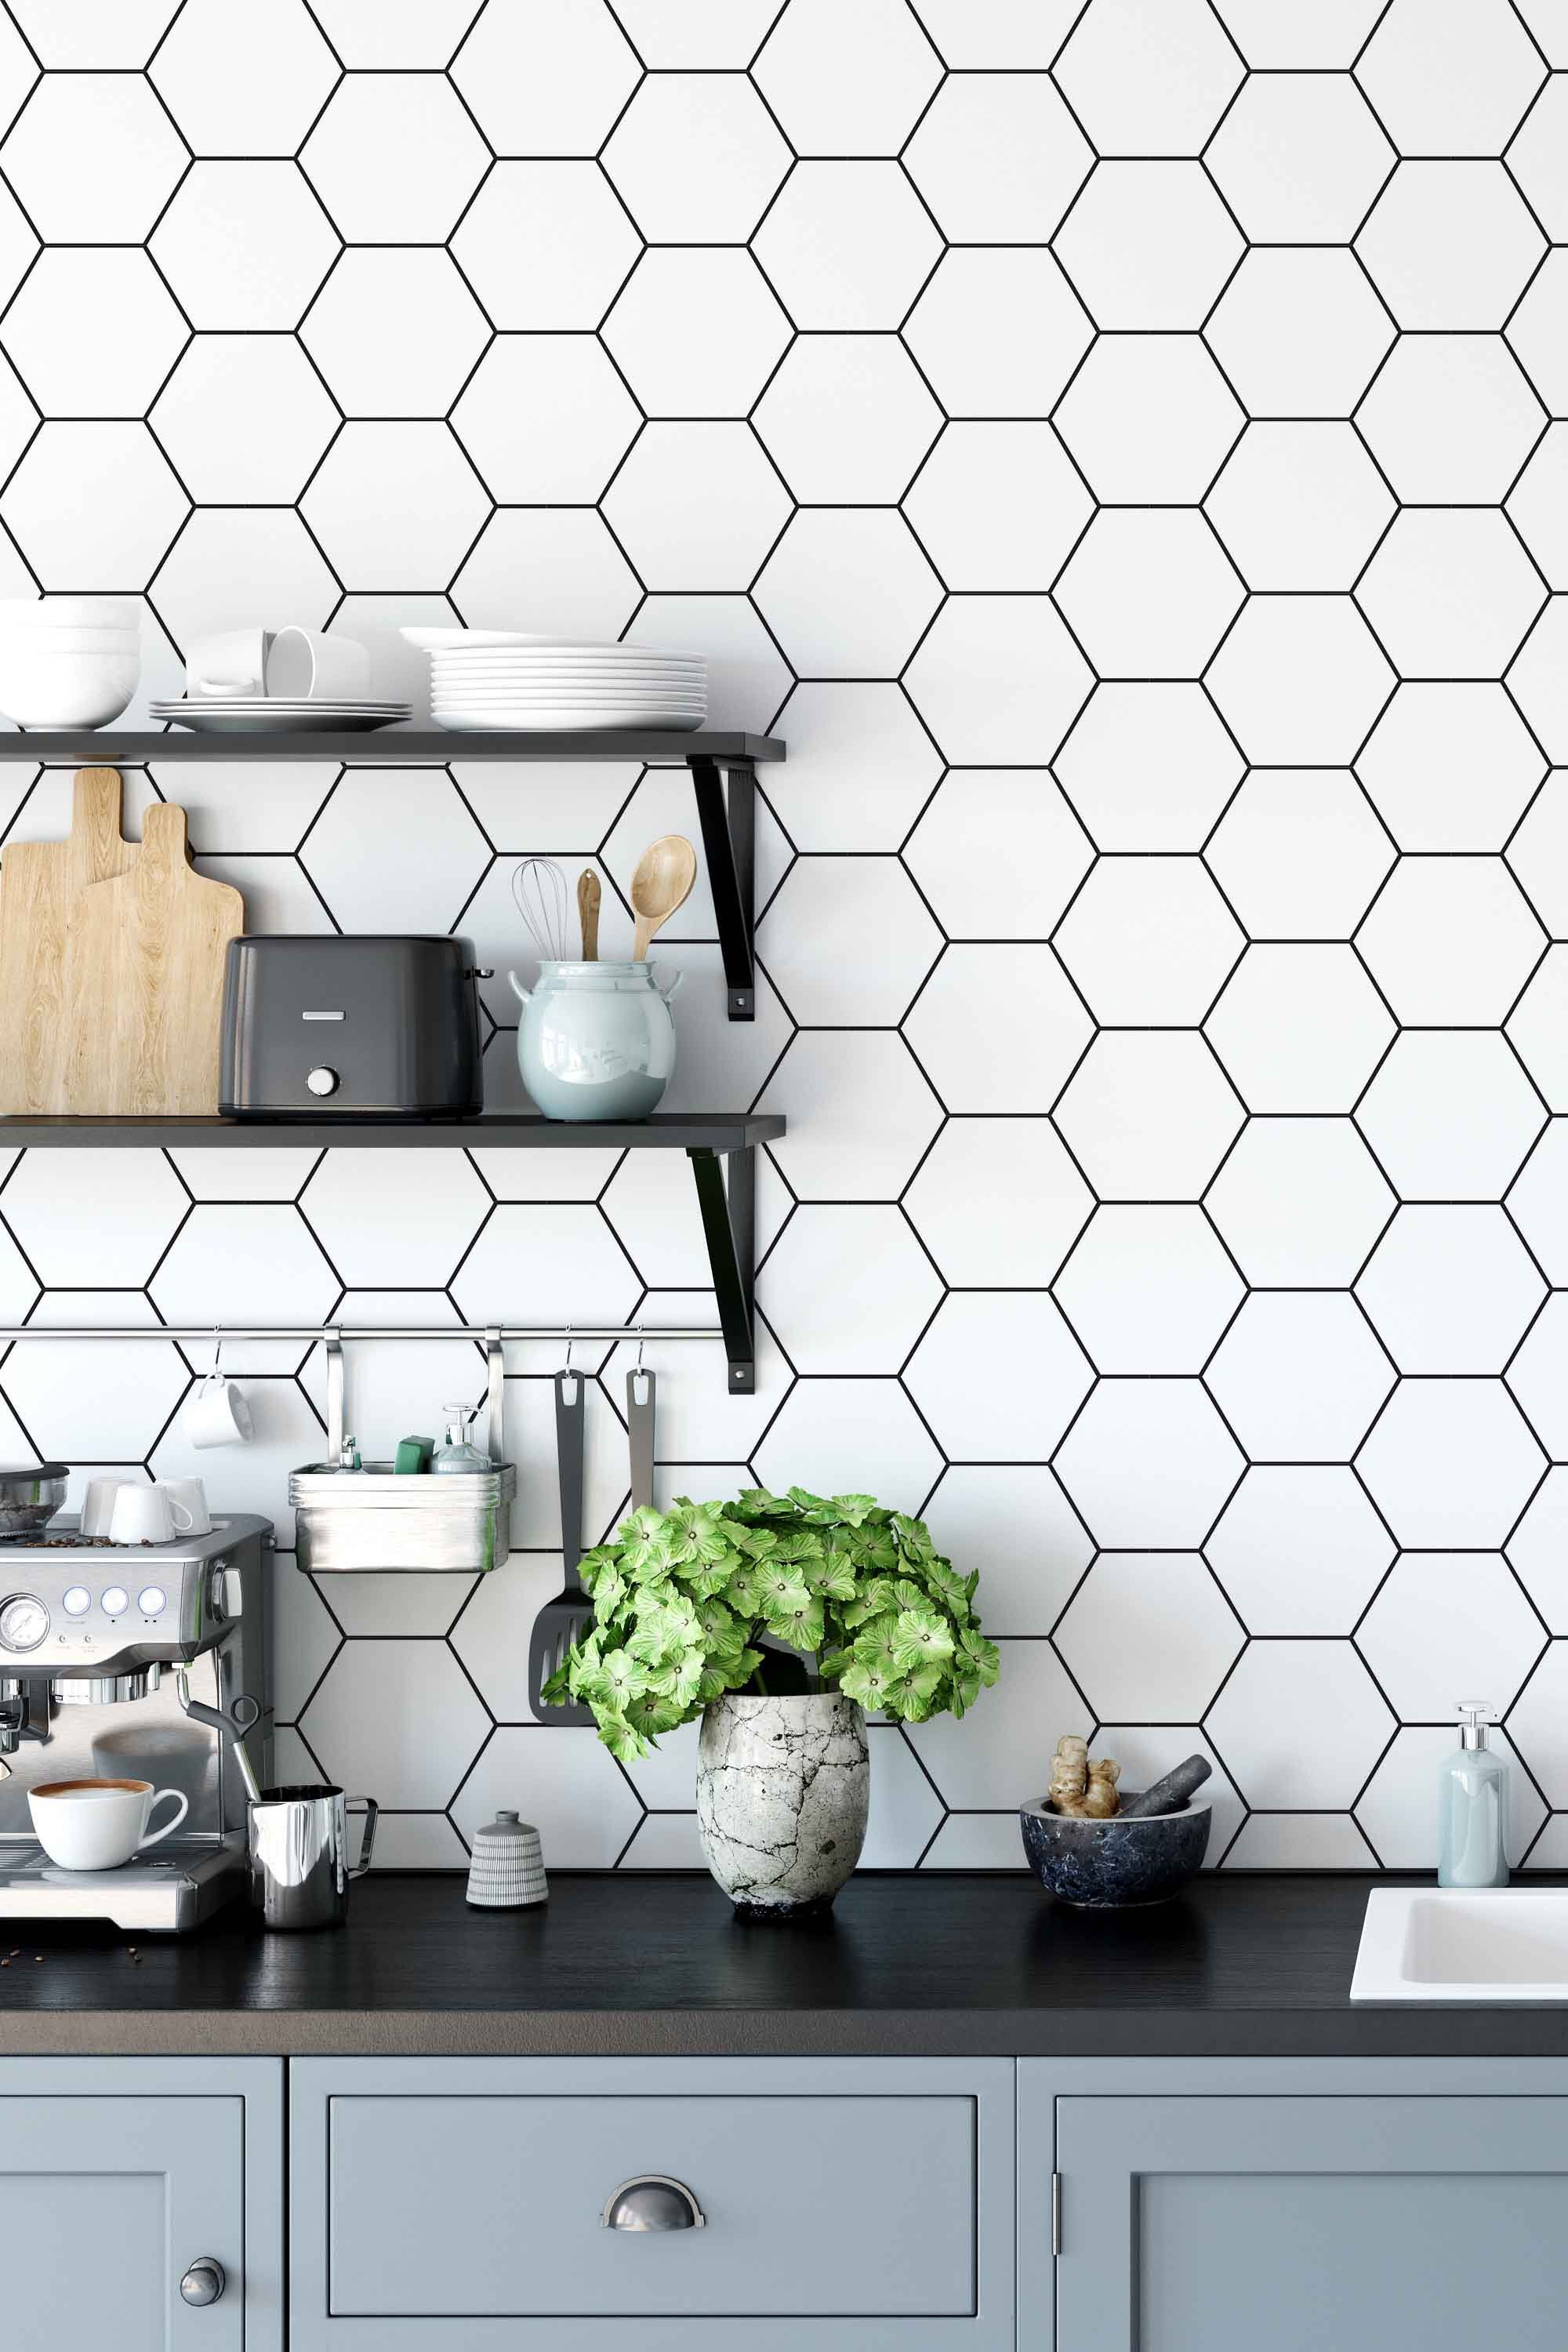 Brick Wallpaper Kitchen Wallpaper Kitchen Wallpaper Country Kitchen Counter Decor